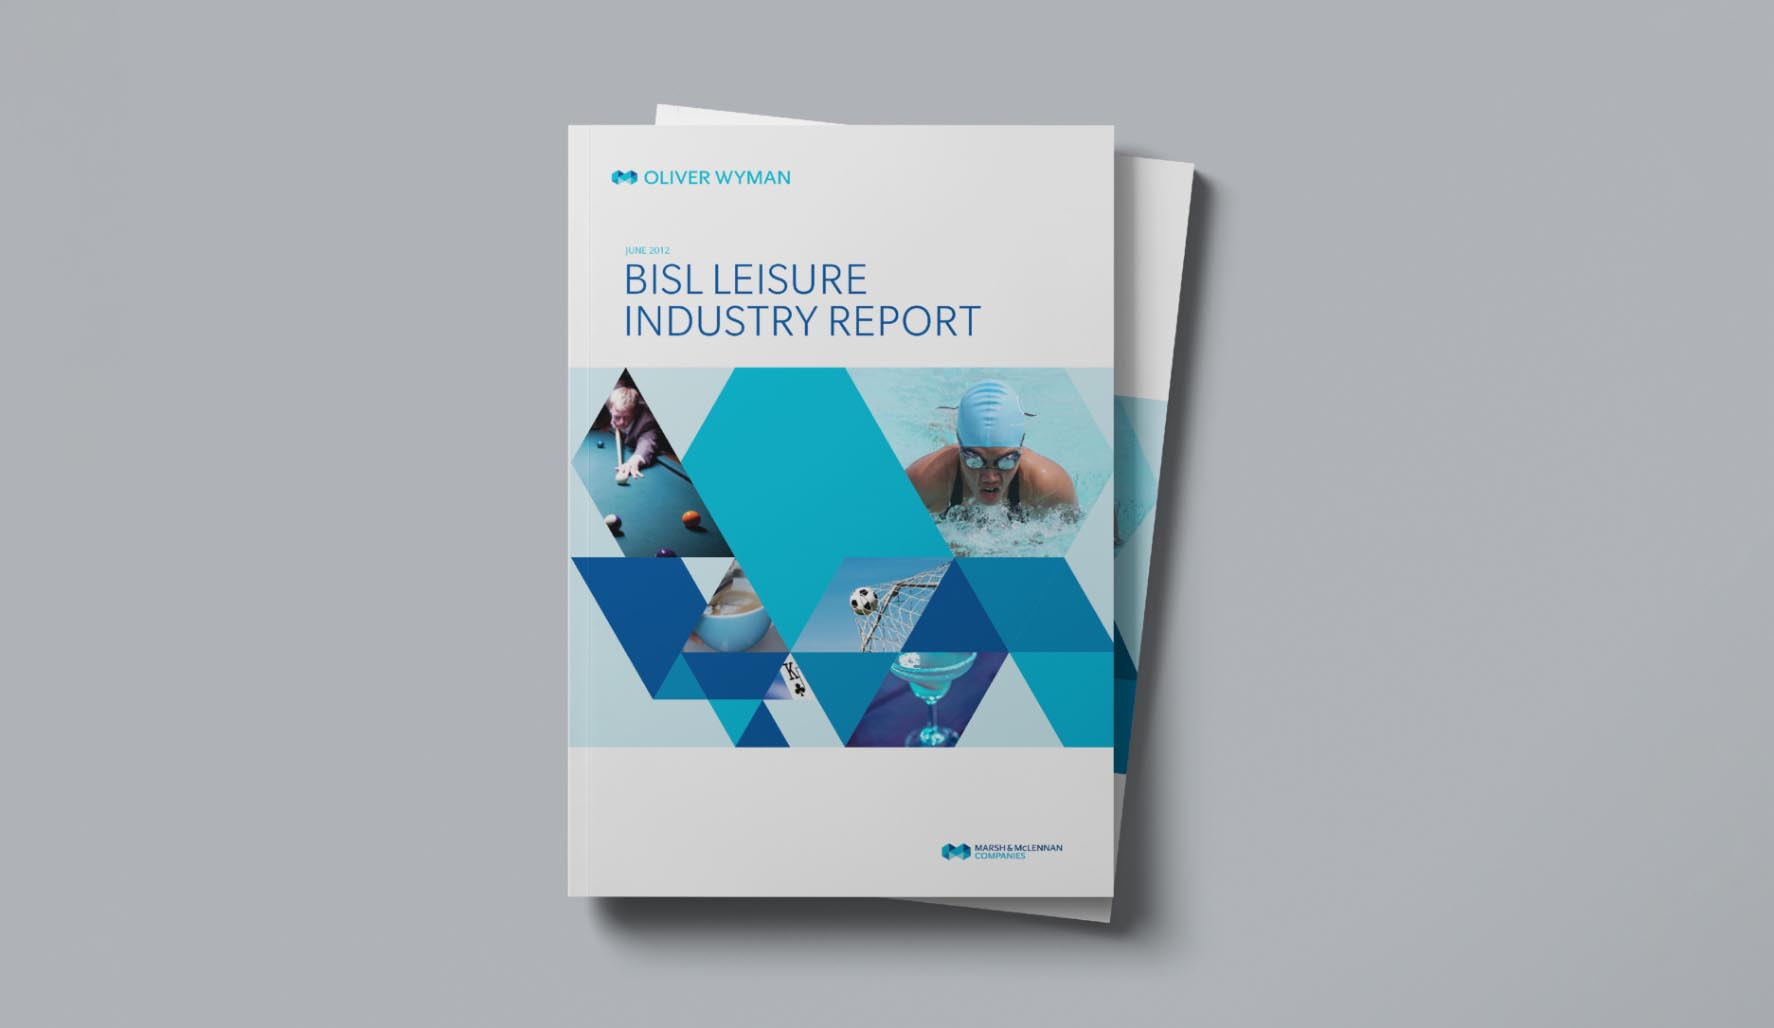 Oliver Wyman report design